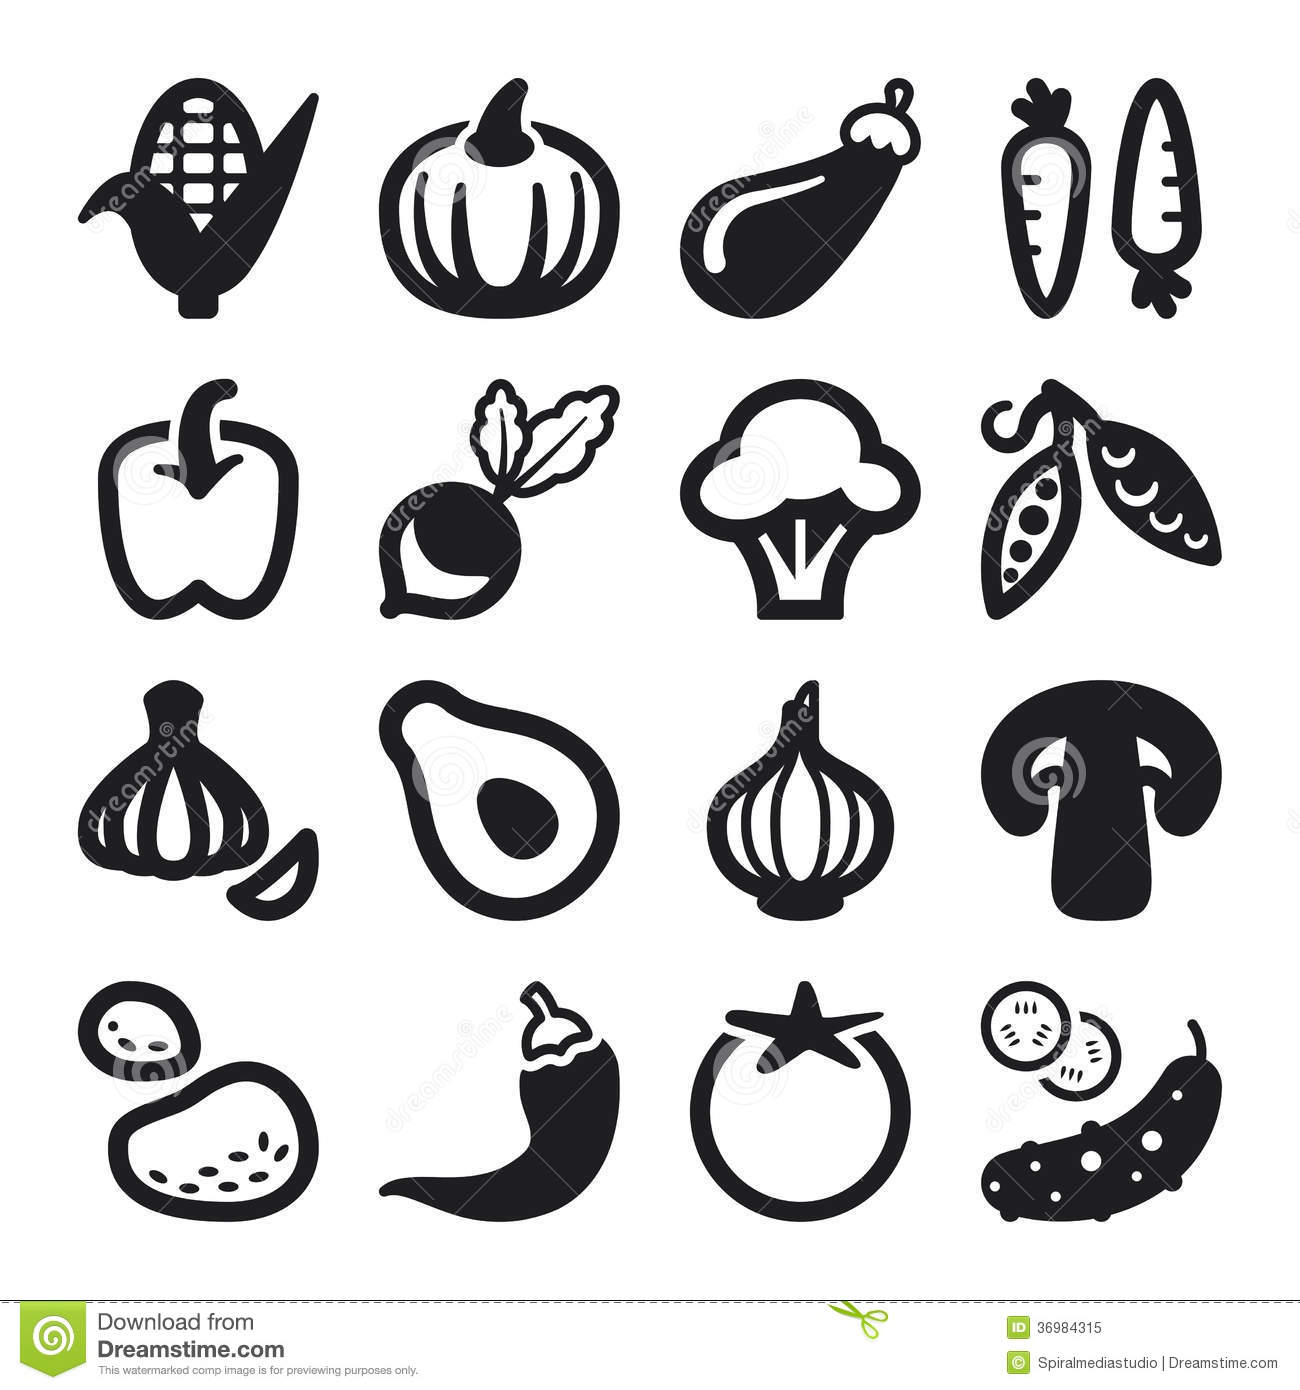 Vegetables Flat Icons Black Royalty Free Stock Photo